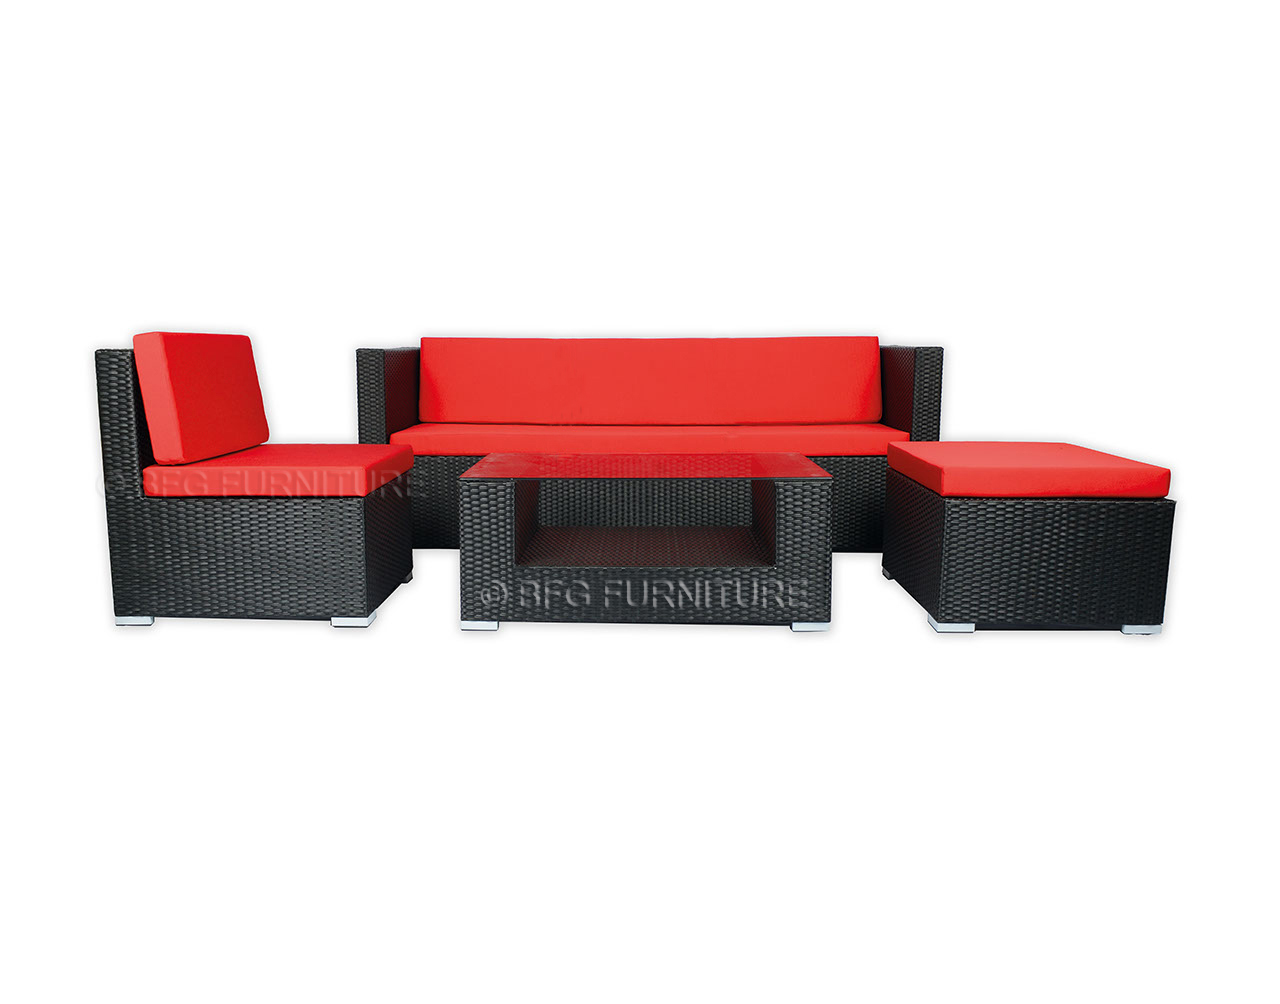 Ponceau Sofa Set - Red Cushions